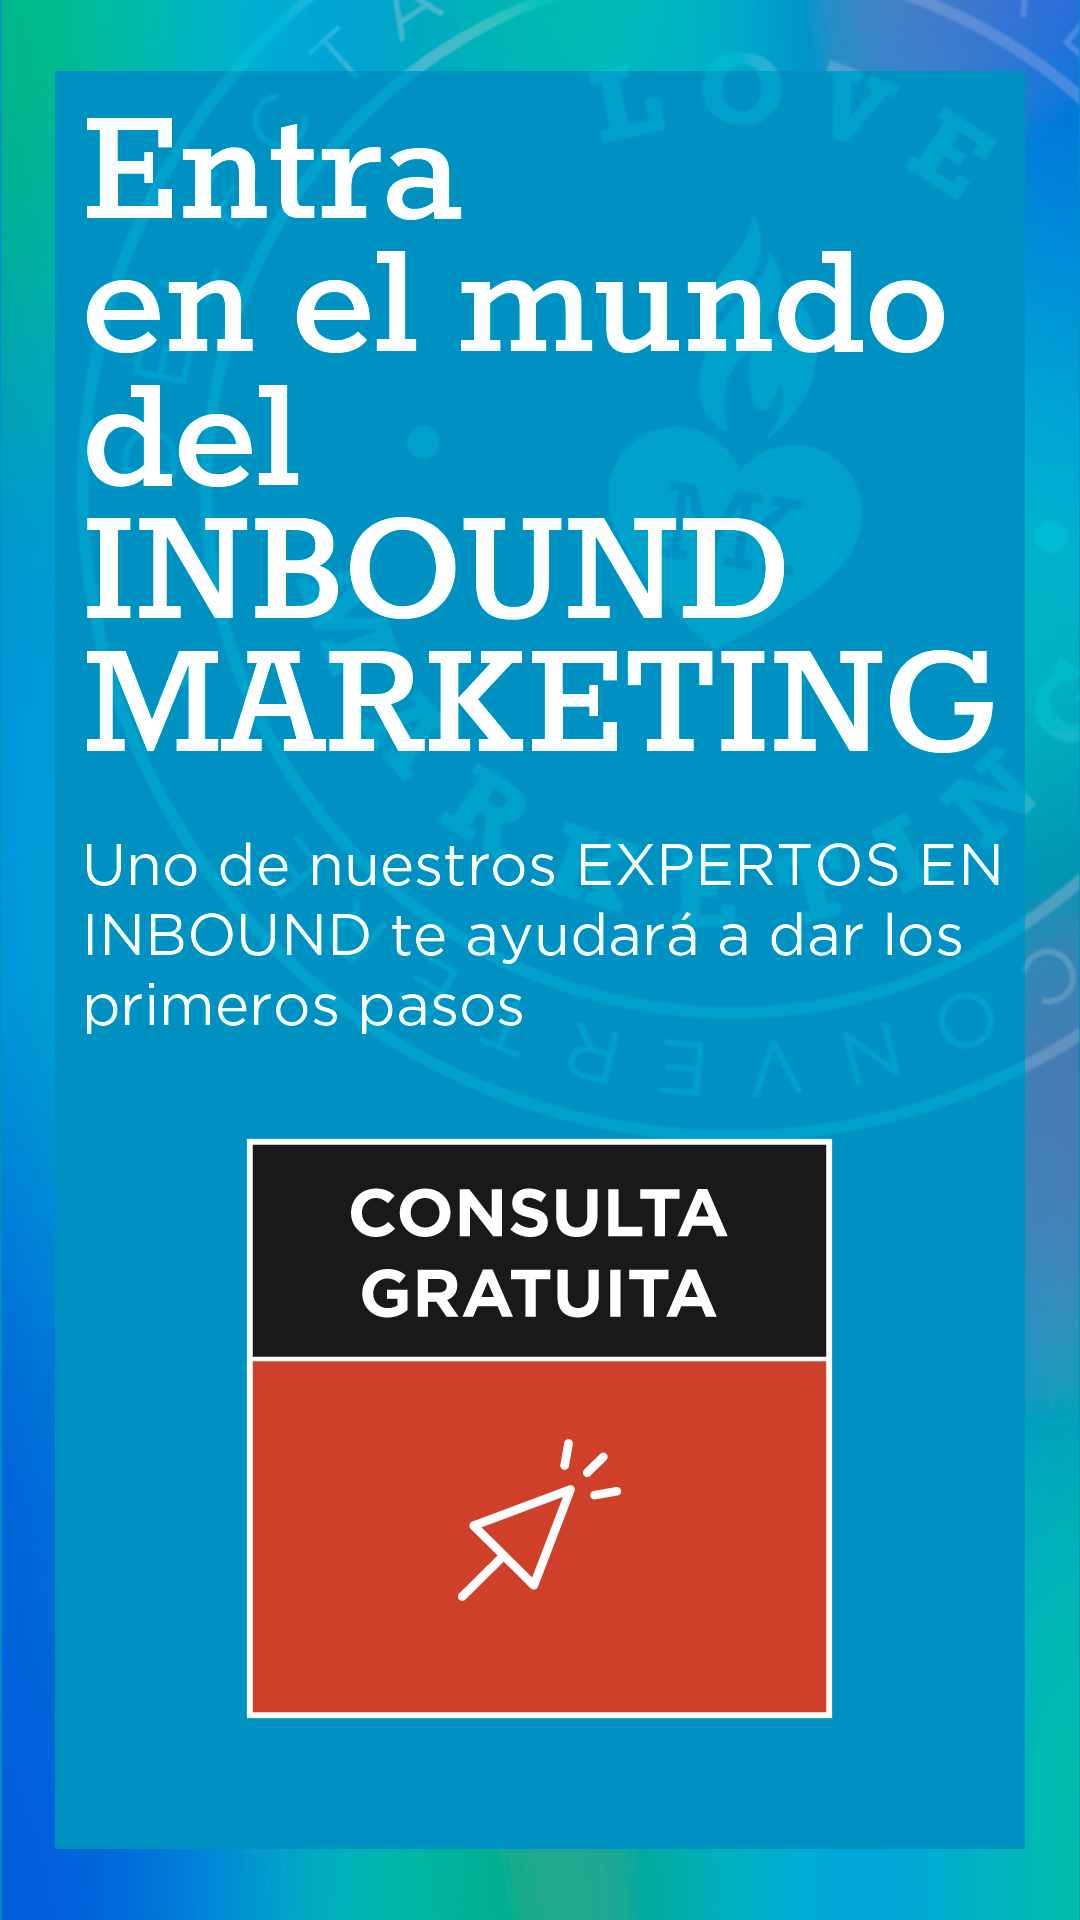 Contacta con un experto en Inbound Marketing